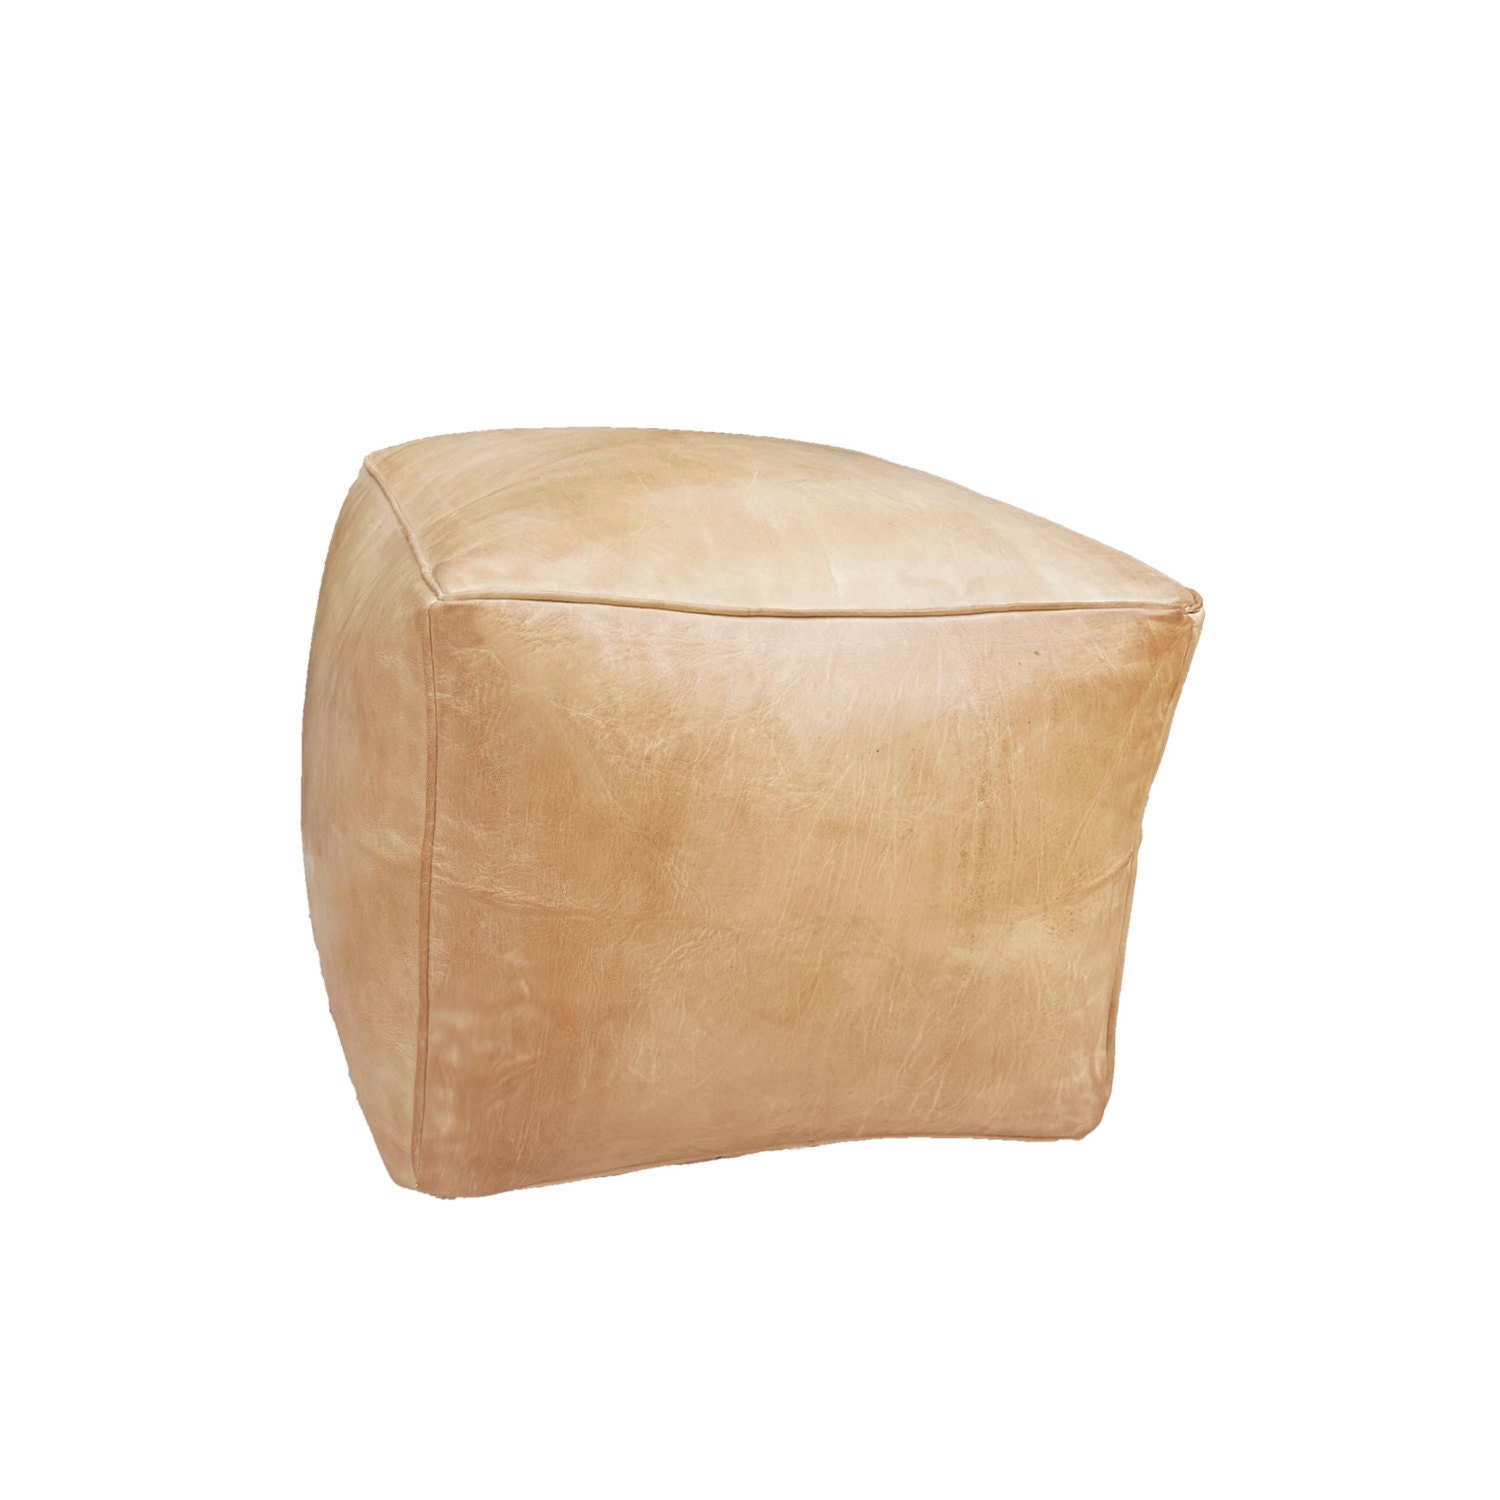 leather pouf ottoman natural tan leather cube big sand. Black Bedroom Furniture Sets. Home Design Ideas